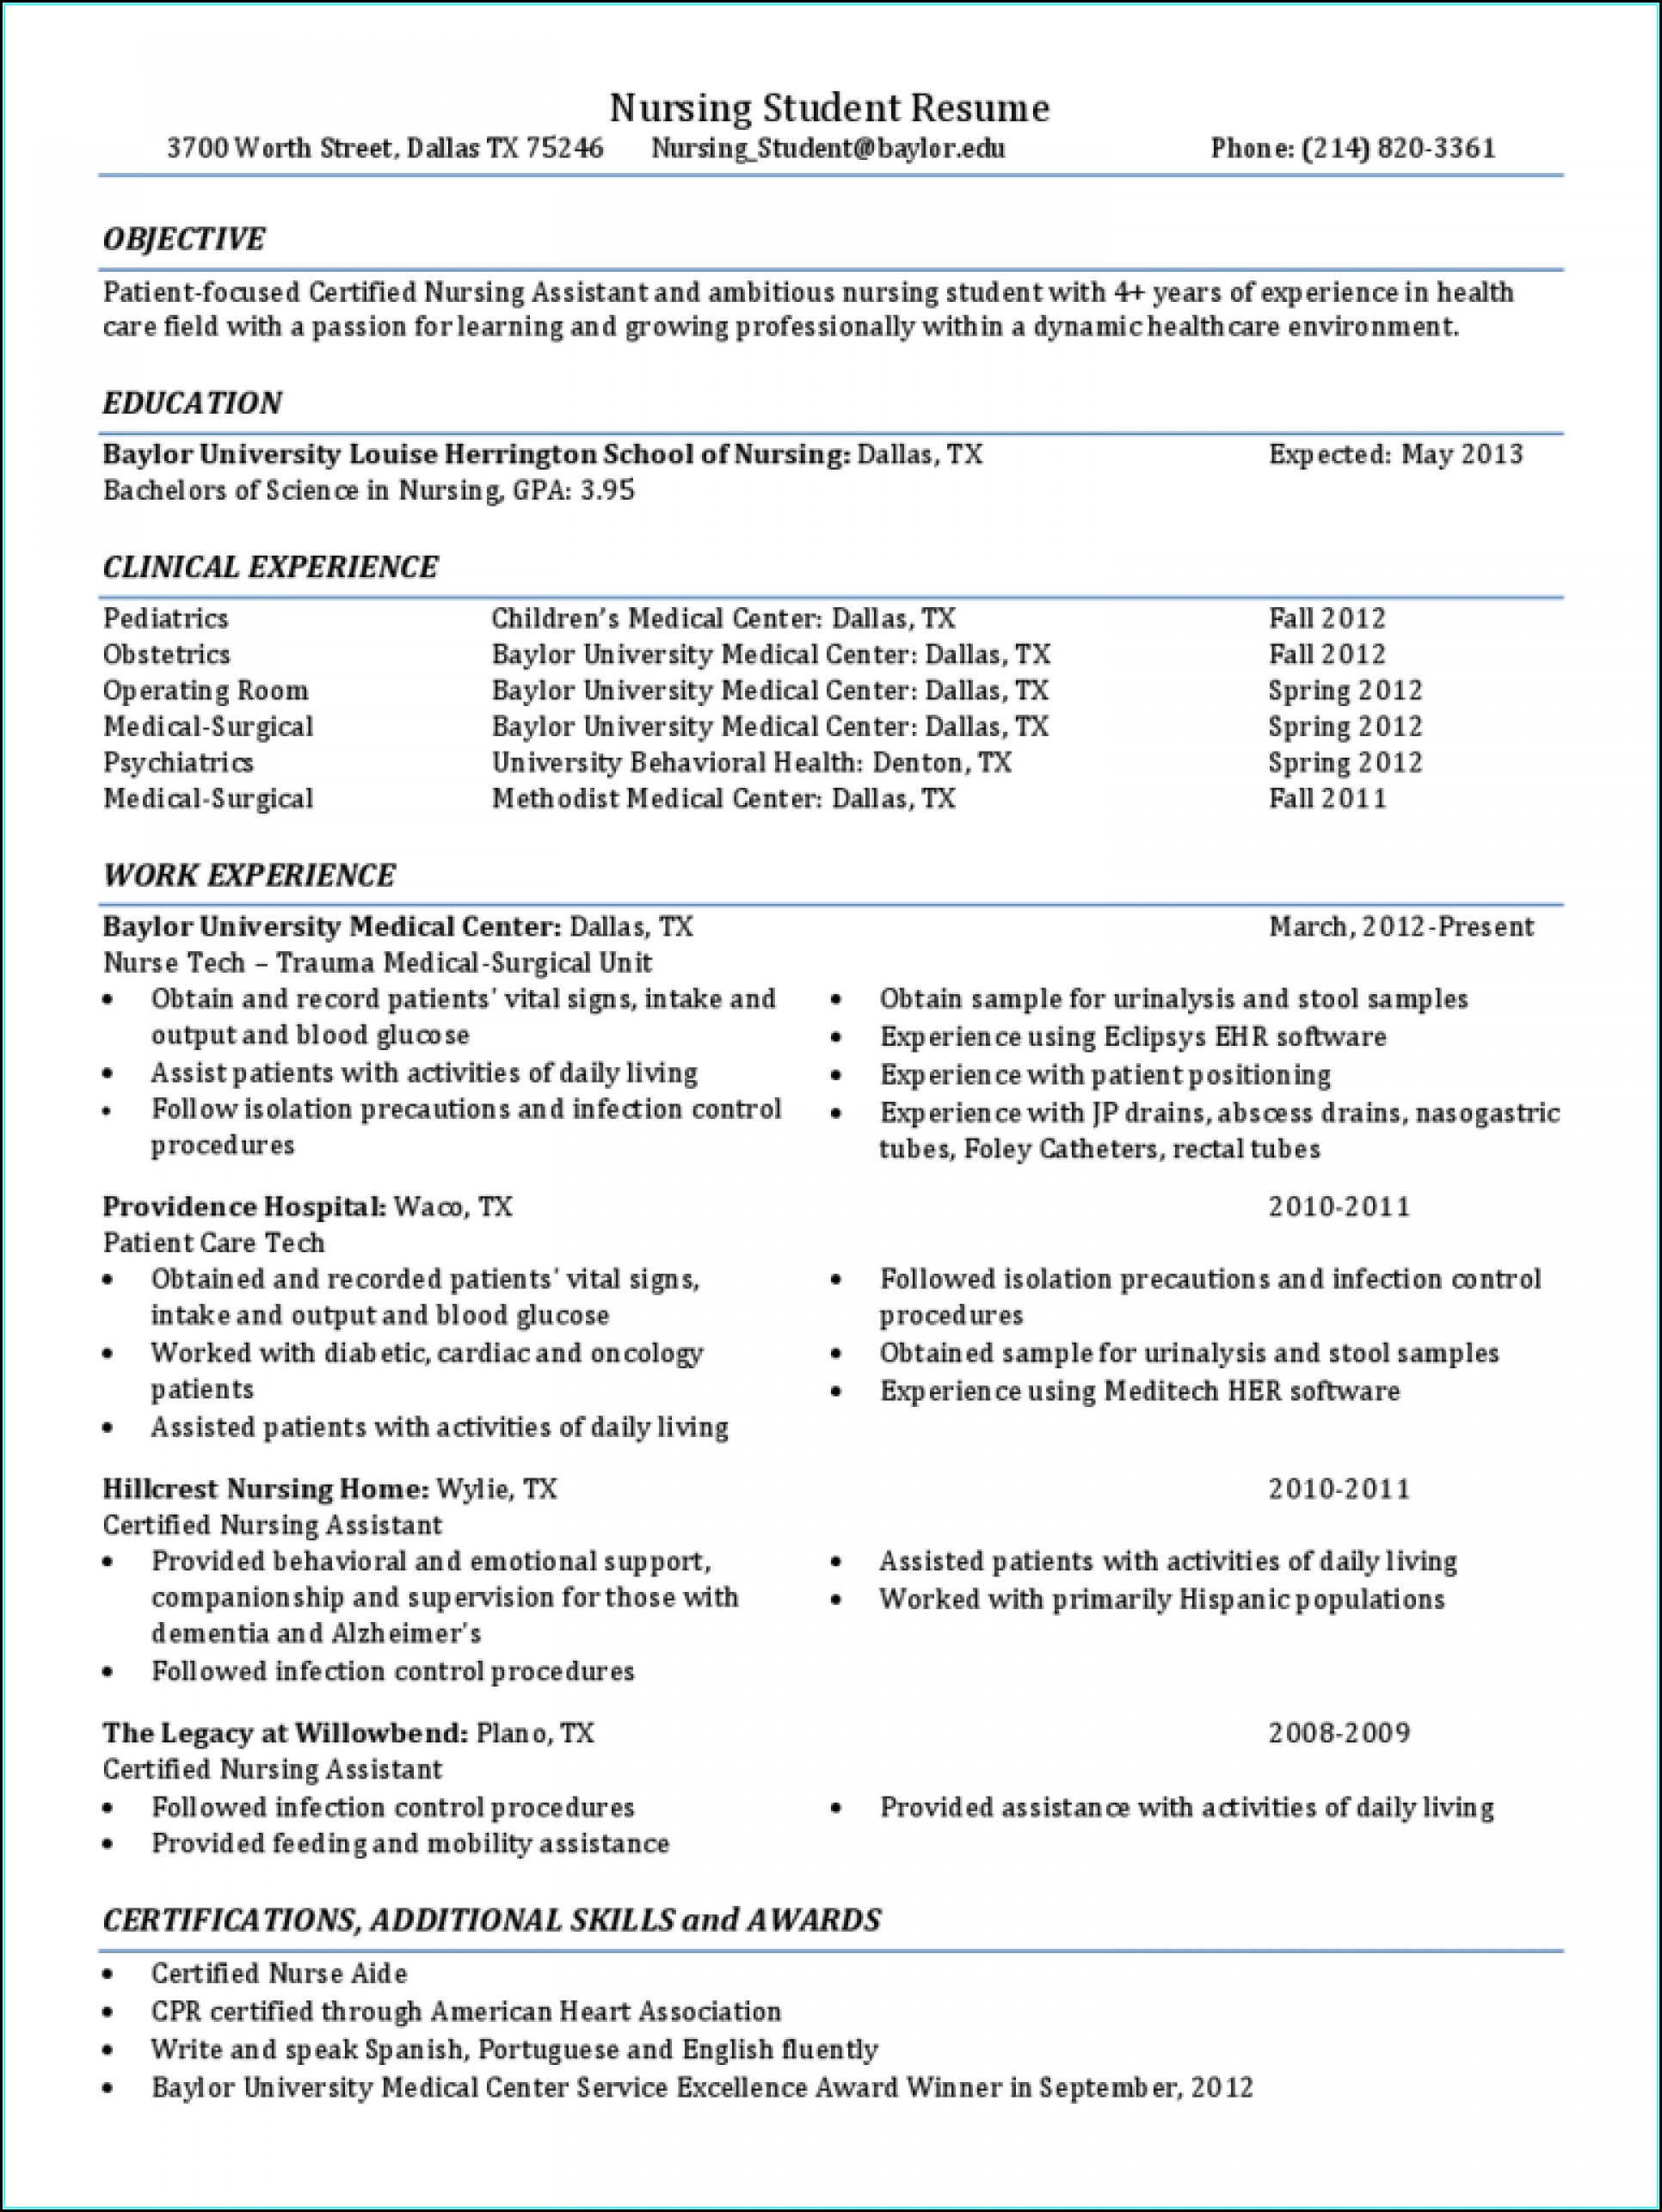 Resume Sample For Nursing Student